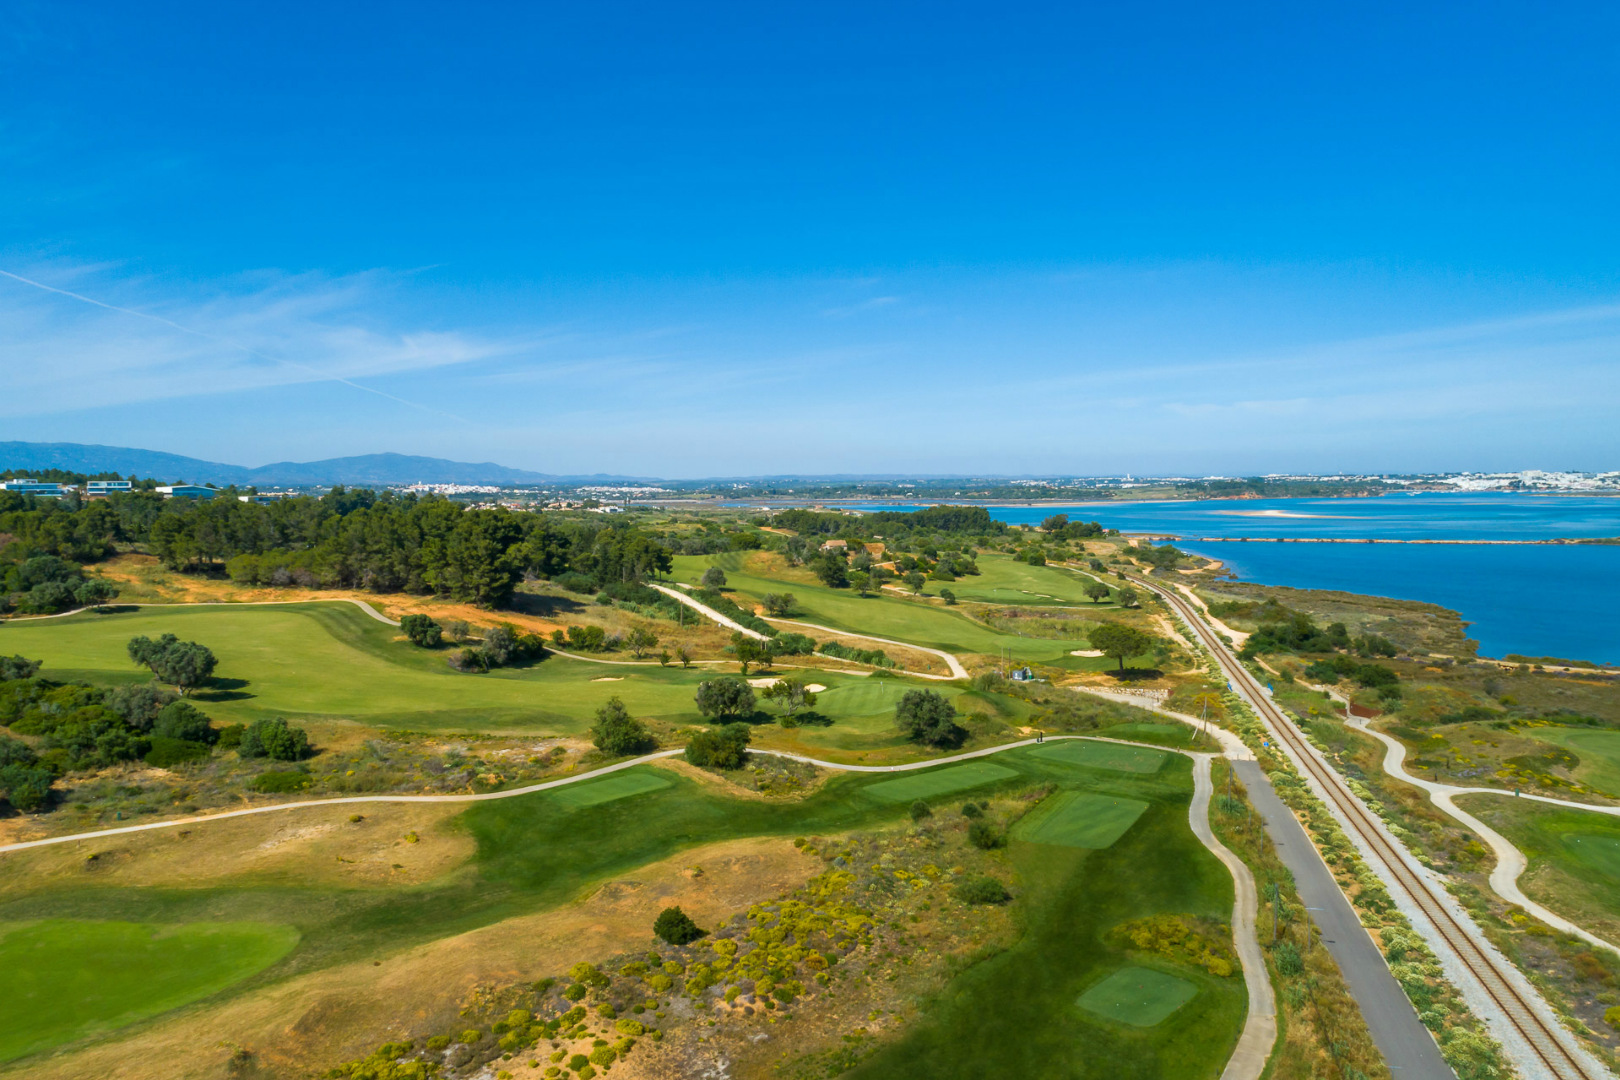 Aerial view of Palmares golf course